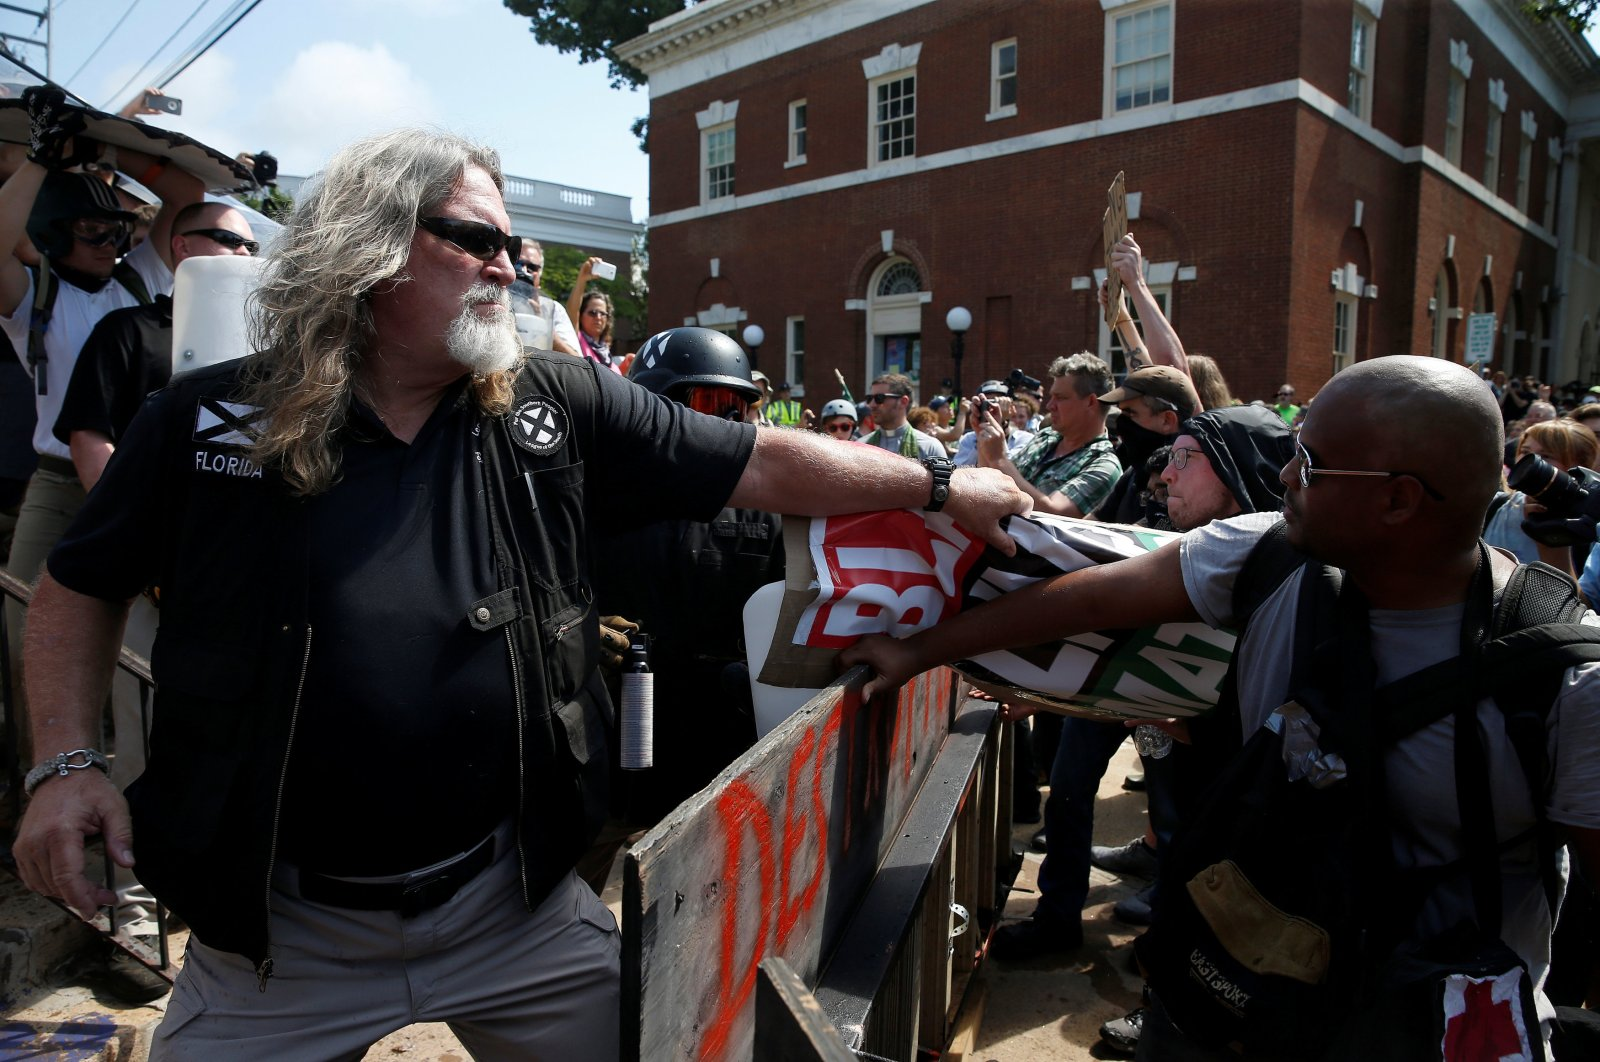 A white supremacist grabs a counter protesters' sign during a rally in Charlottesville, Virginia, U.S., Aug. 12, 2017. (Reuters Photo)